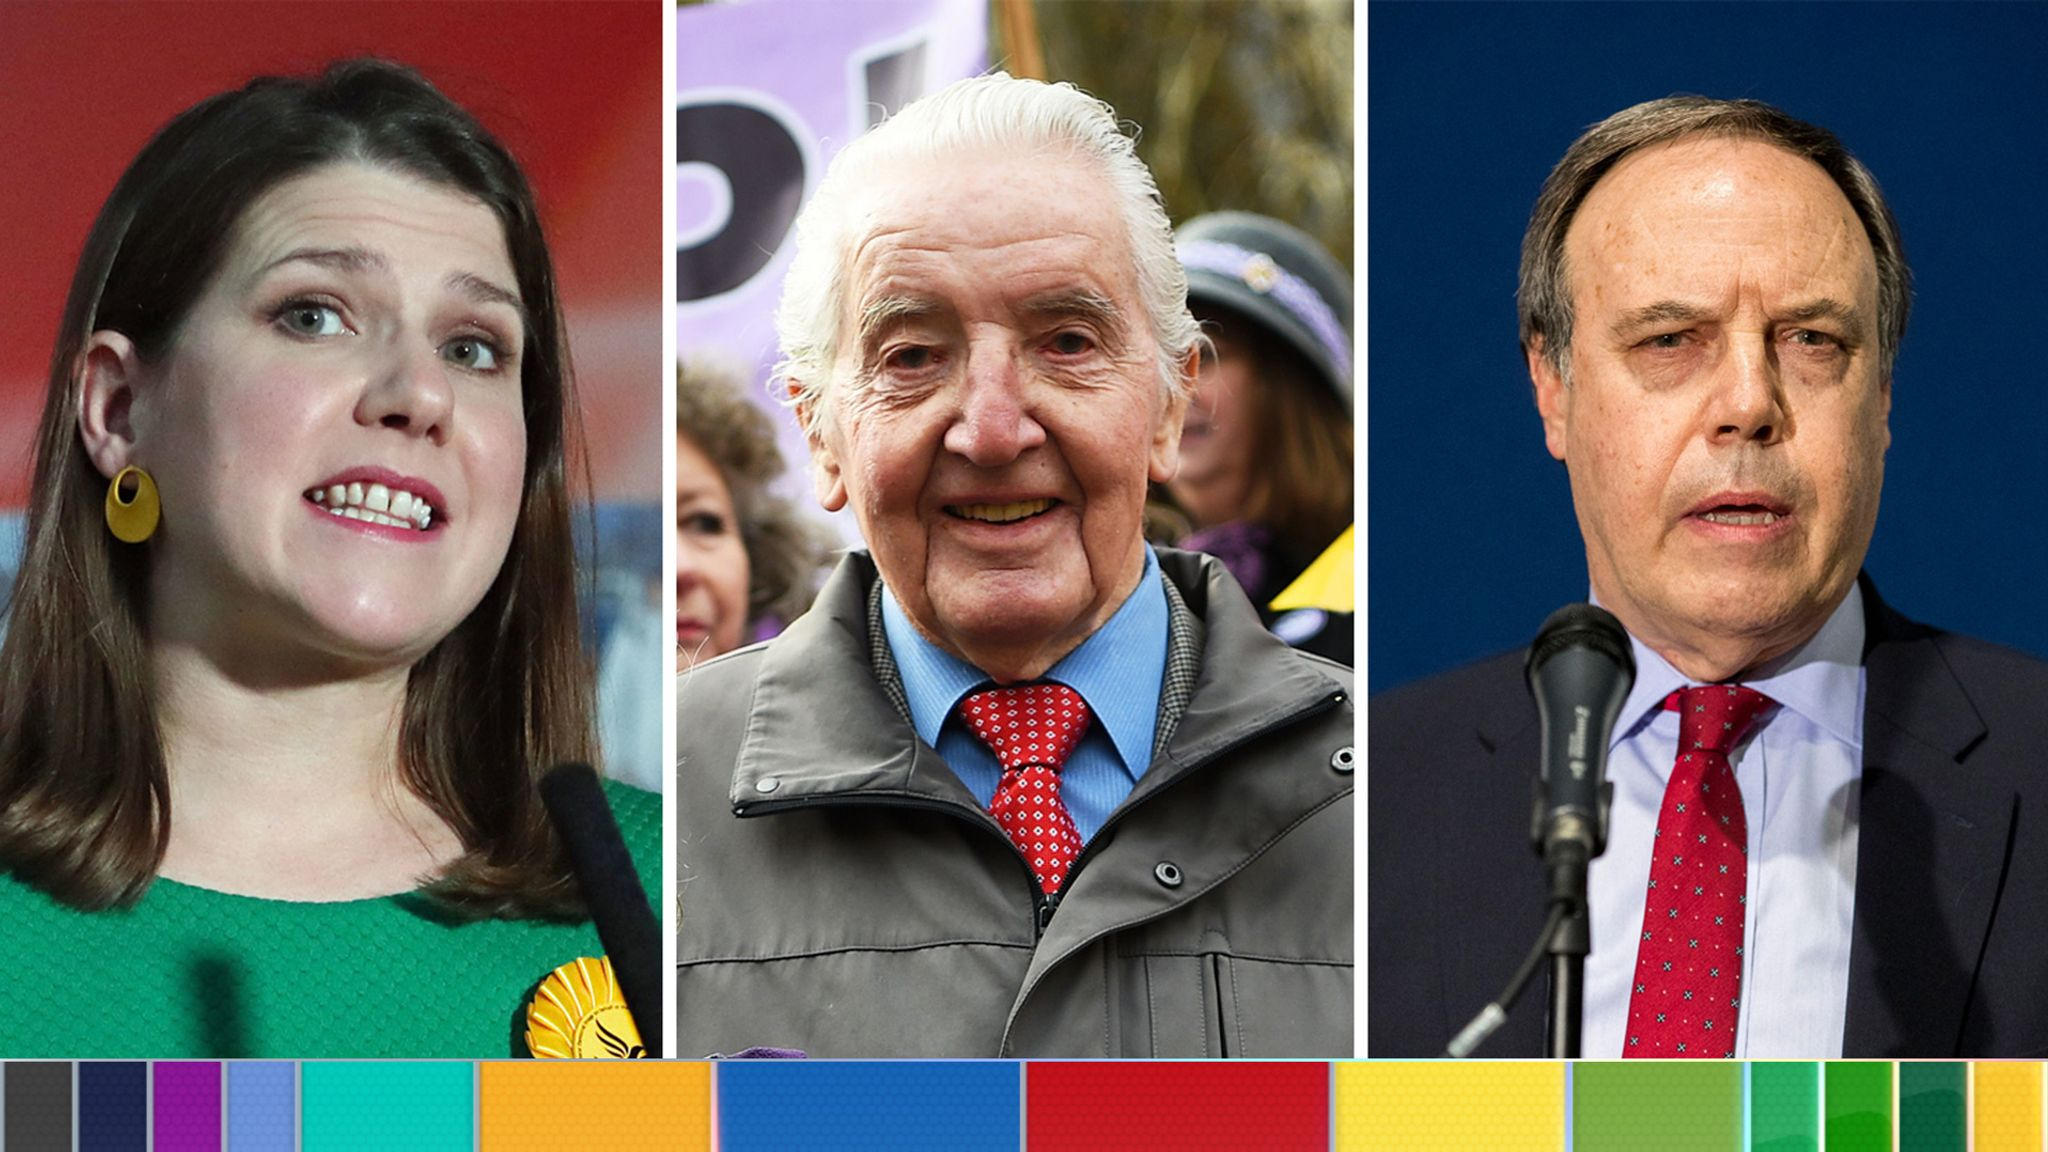 General election key upsets: Party strongholds that switched hands